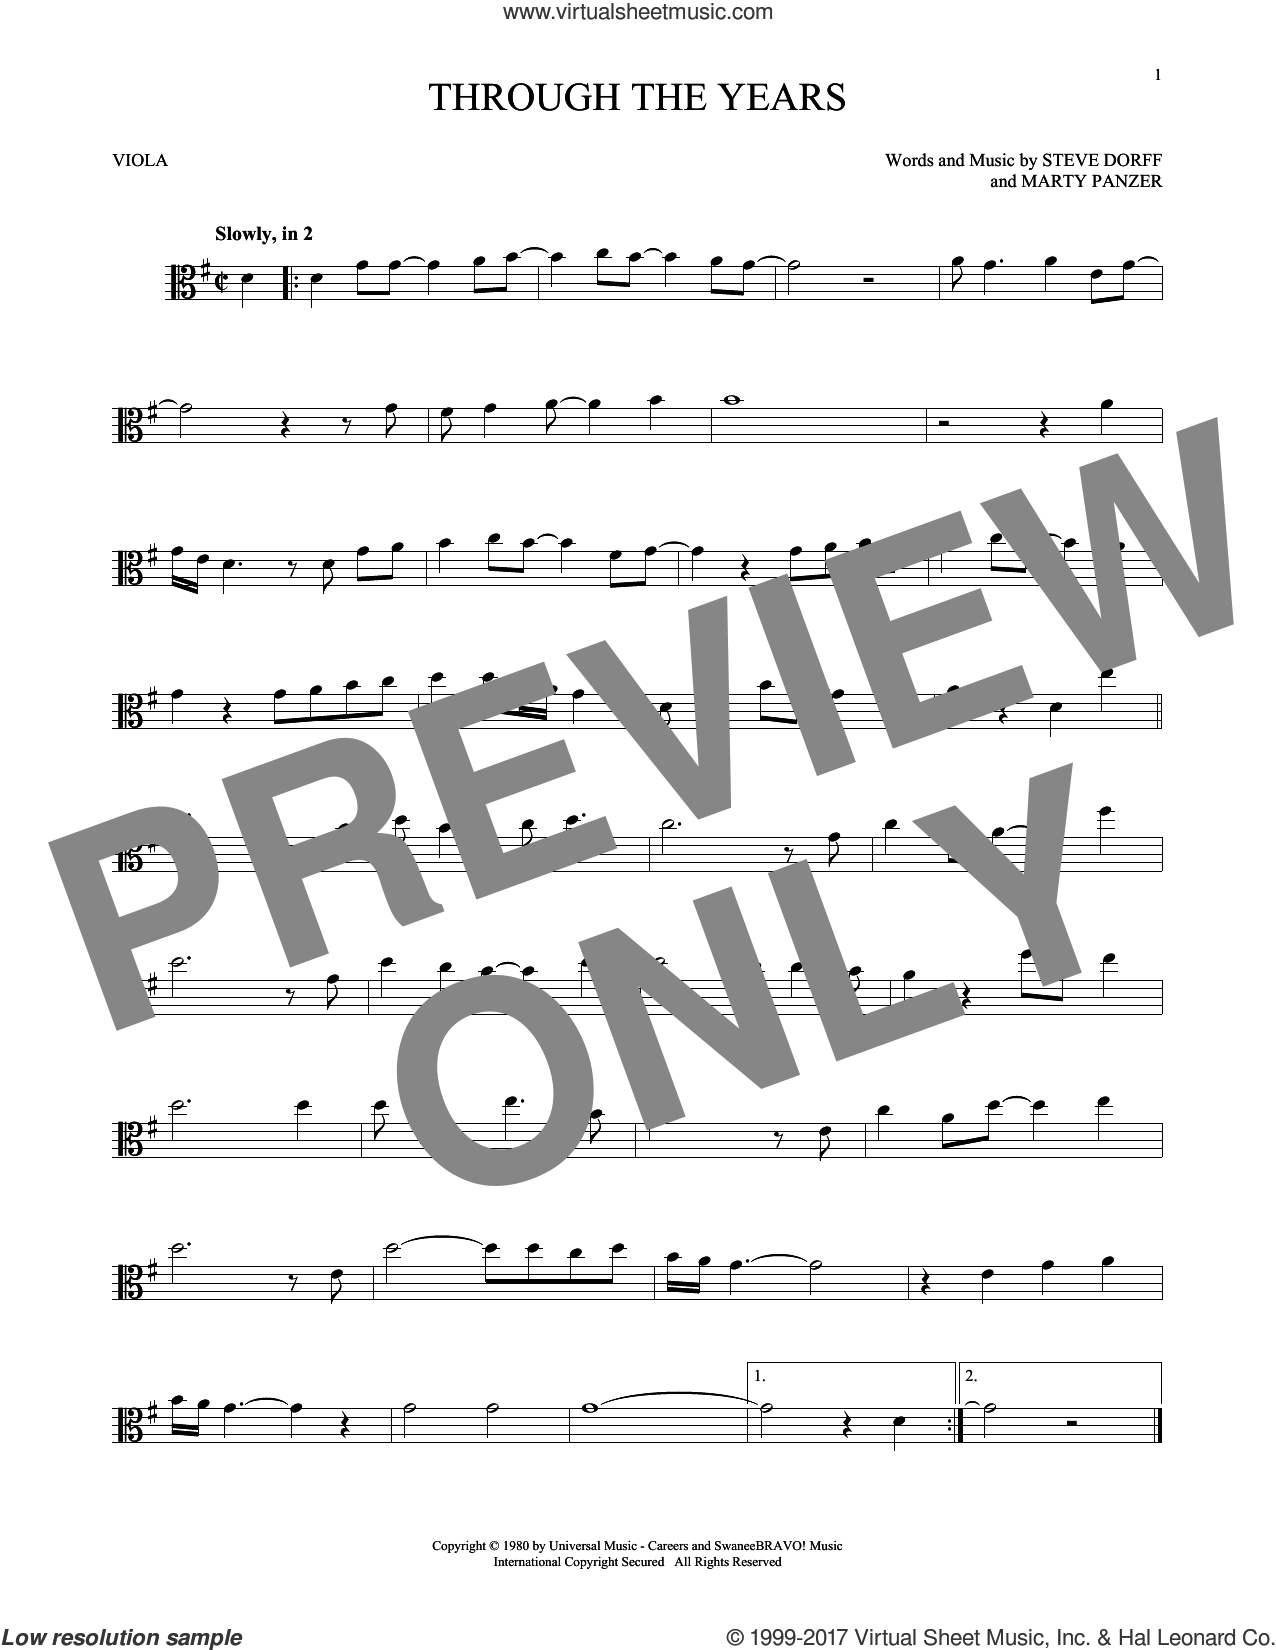 Through The Years sheet music for viola solo by Kenny Rogers, Marty Panzer and Steve Dorff, intermediate